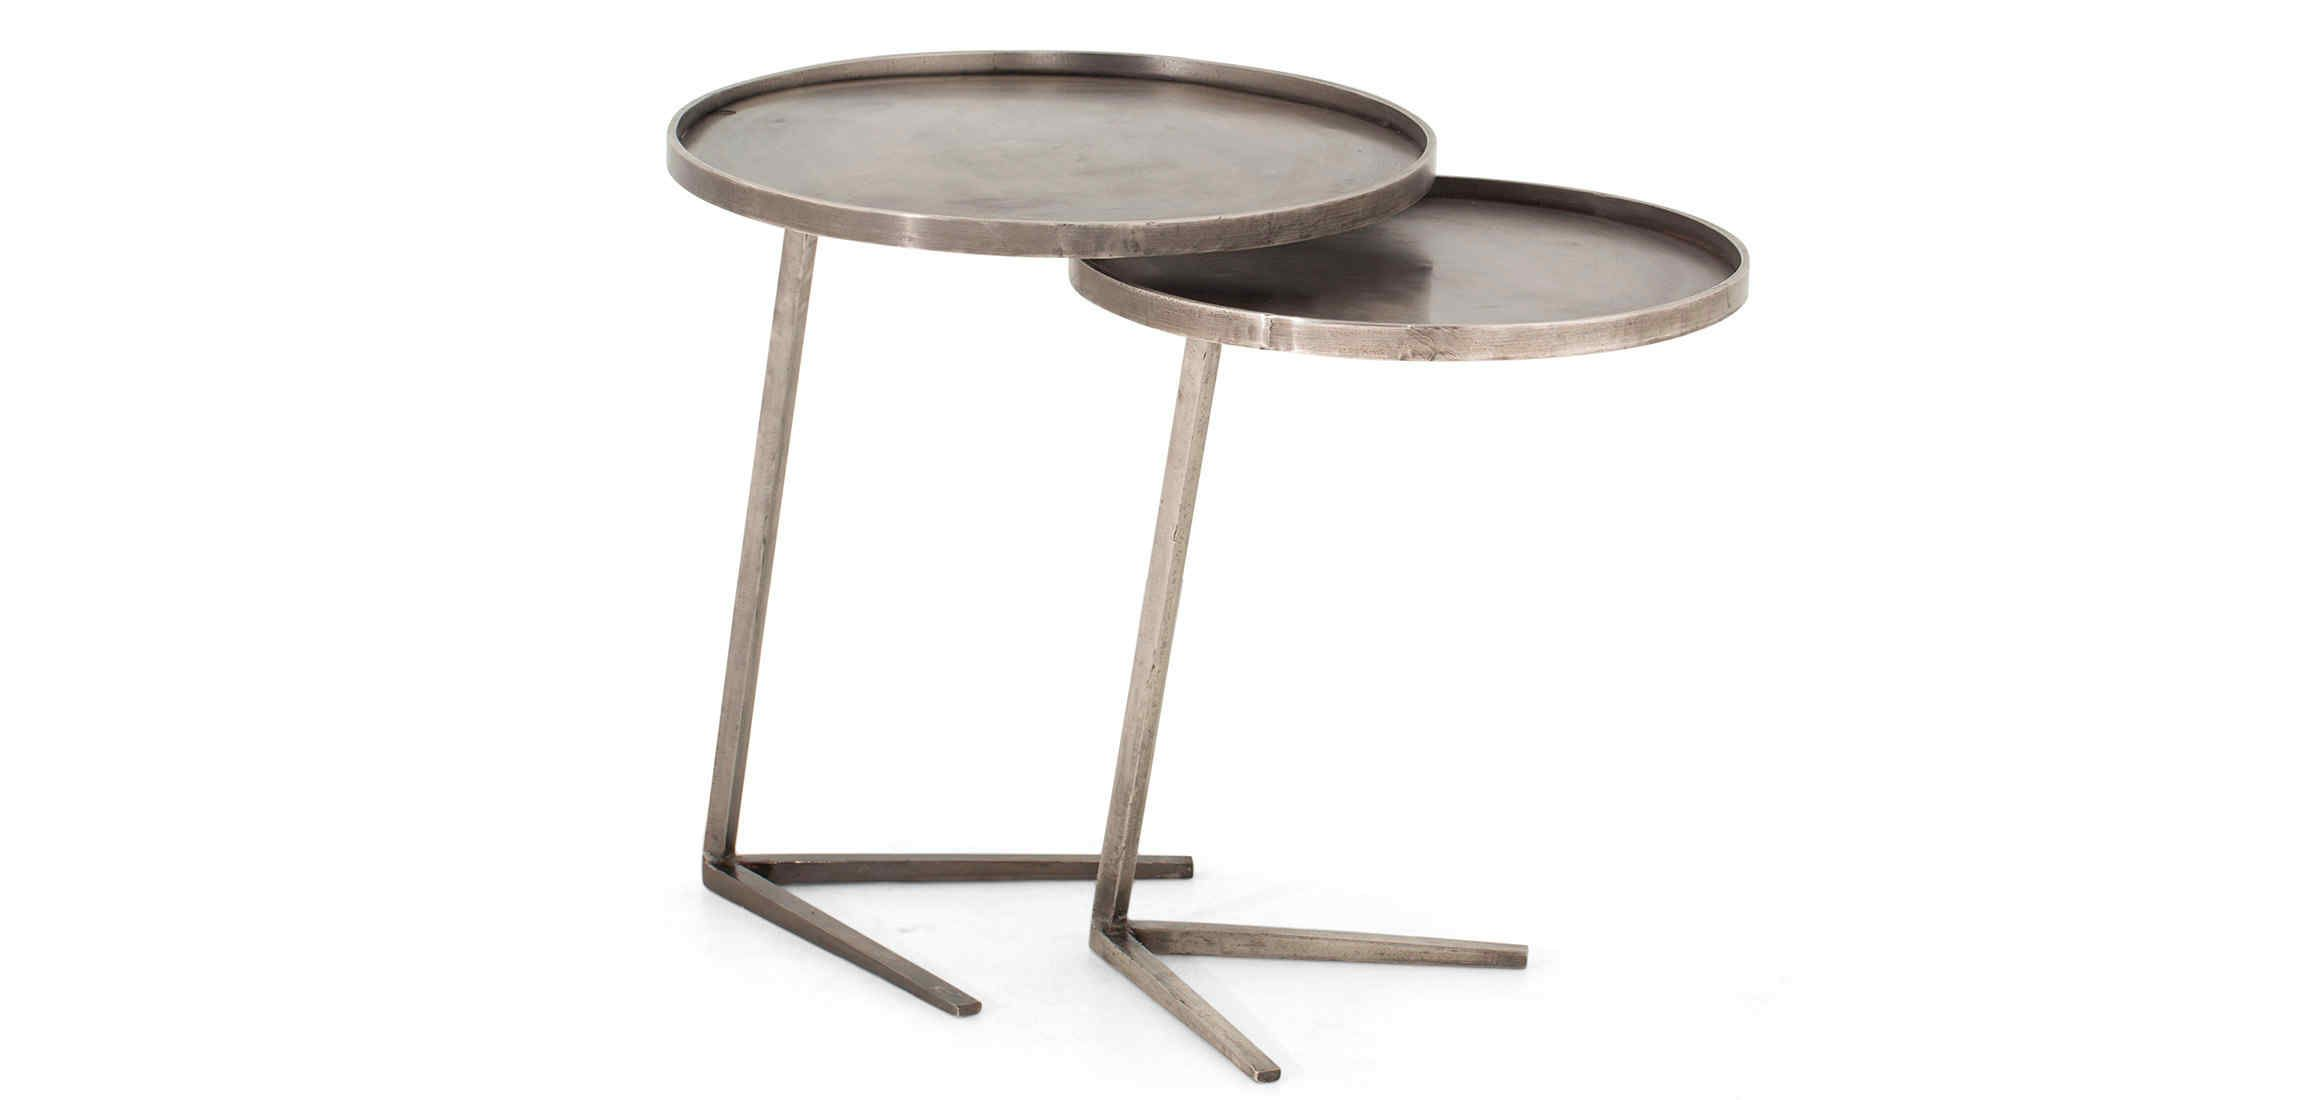 Agos Side Table Iron Set Of 2 Flamant Side Table Table Iron [ 1100 x 2300 Pixel ]